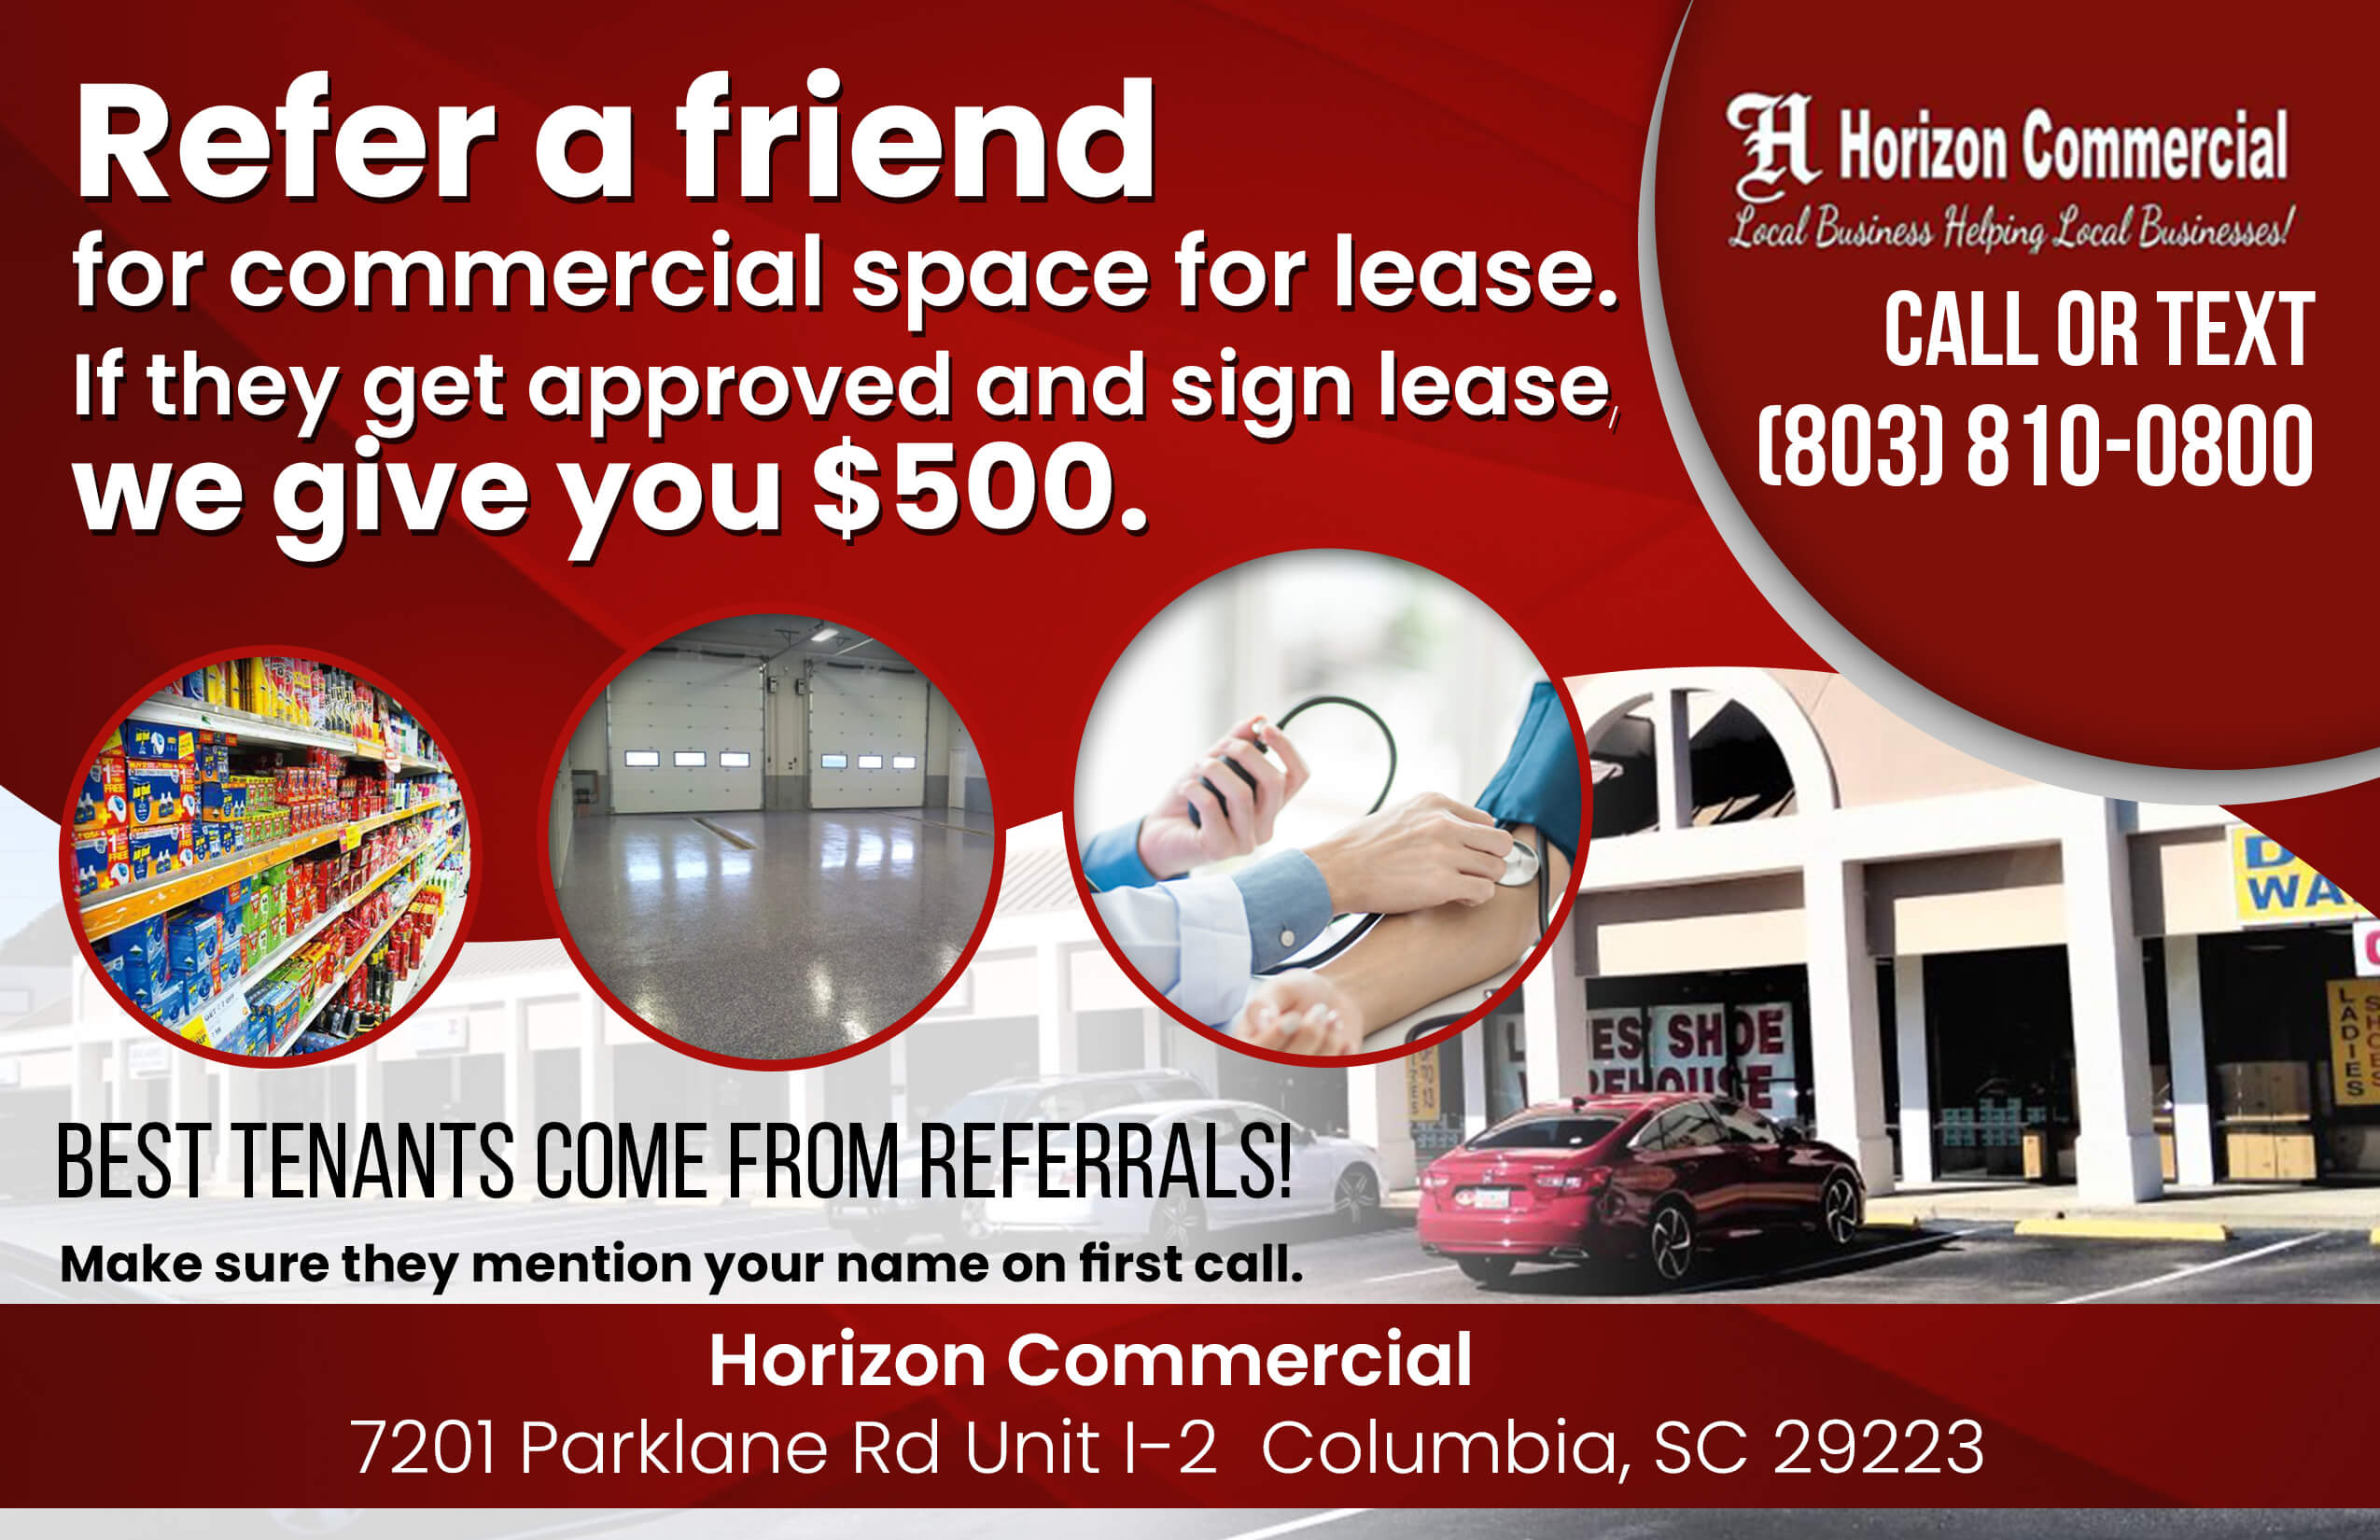 Tenant Referral Offer